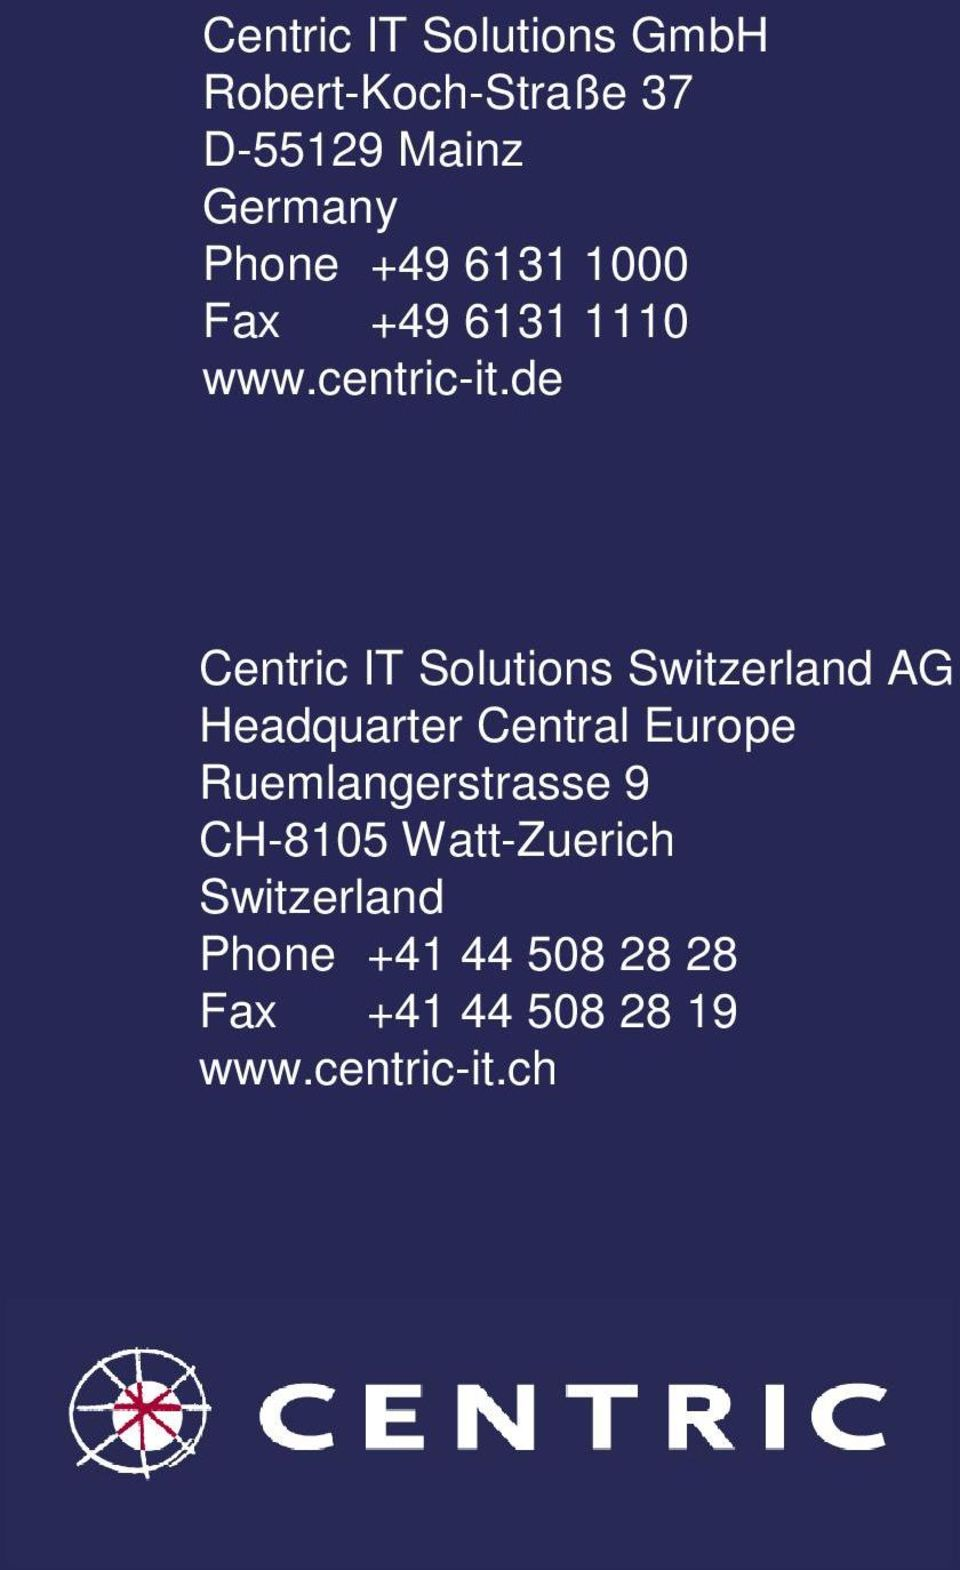 de Centric IT Solutions Switzerland AG Headquarter Central Europe